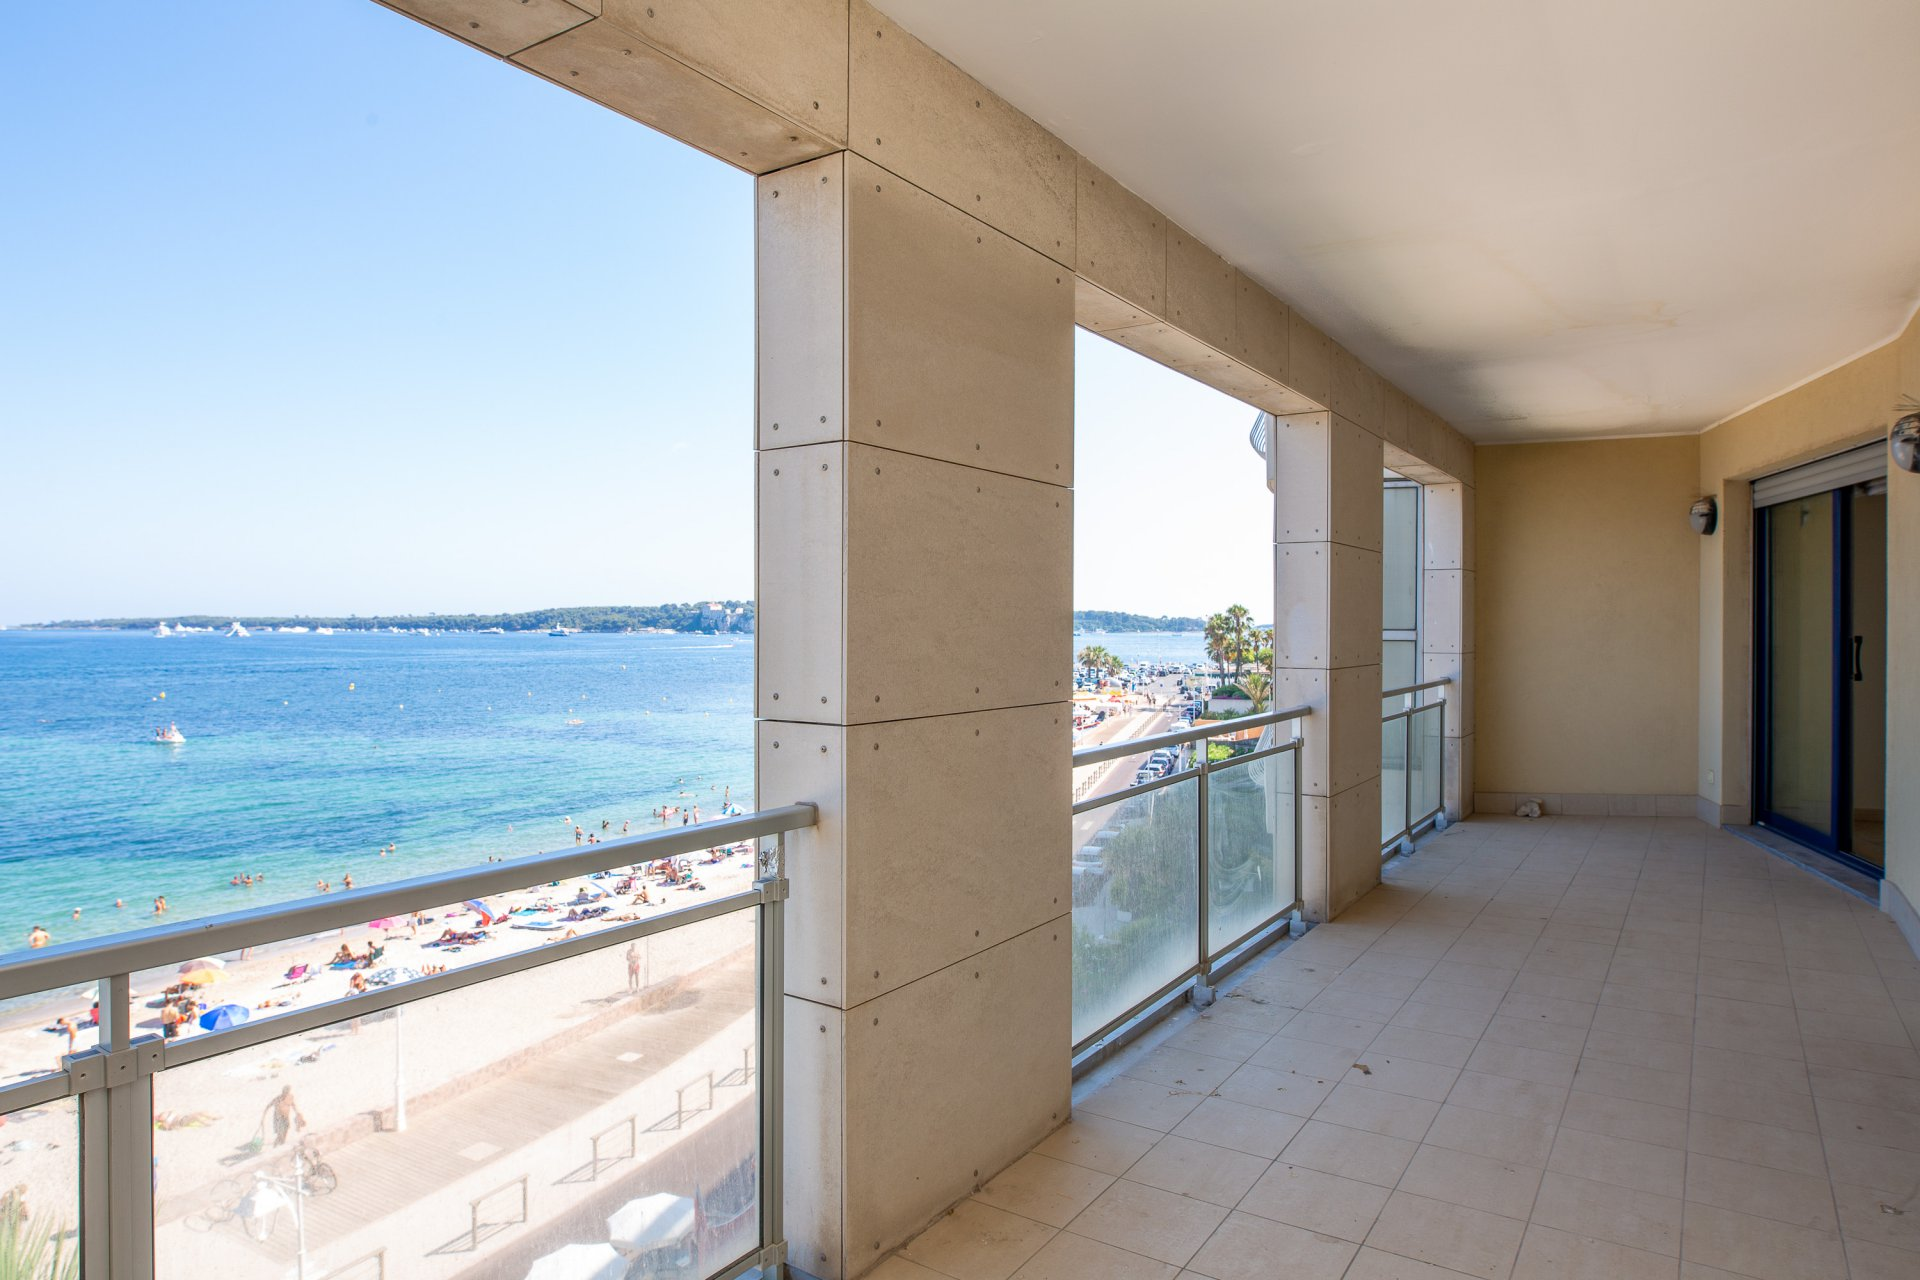 CANNES PALM BEACH EXCLUSIVITE 7 PIECES VUE IMPRENABLE SUR MER